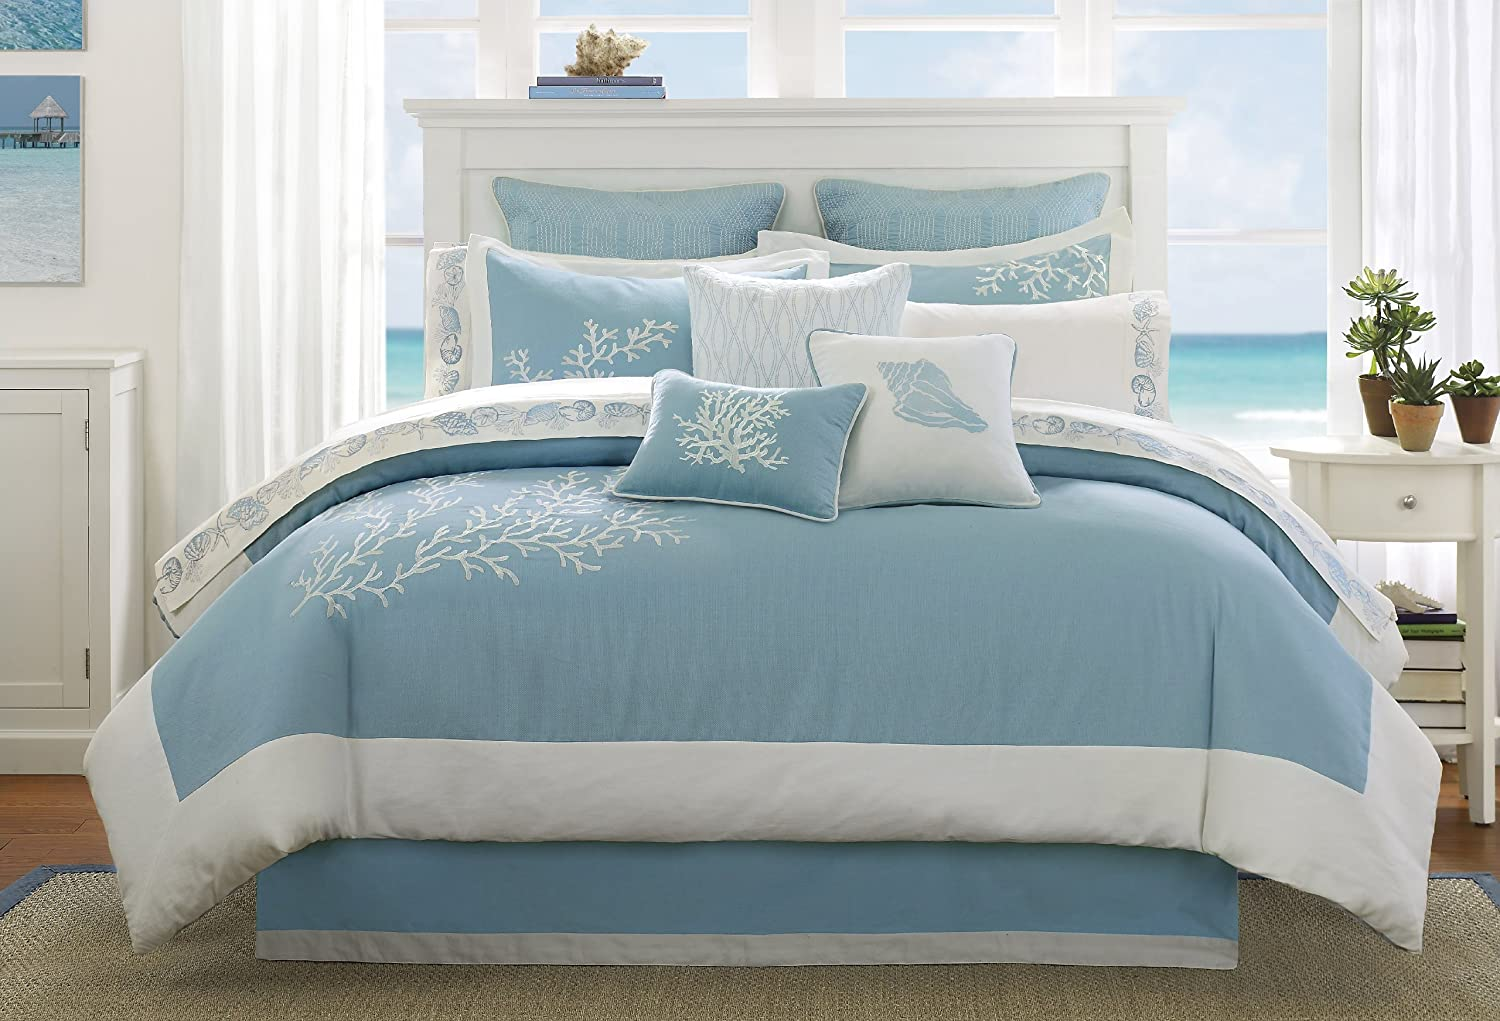 Beach Comforters & Quilts – Ease Bedding with Style